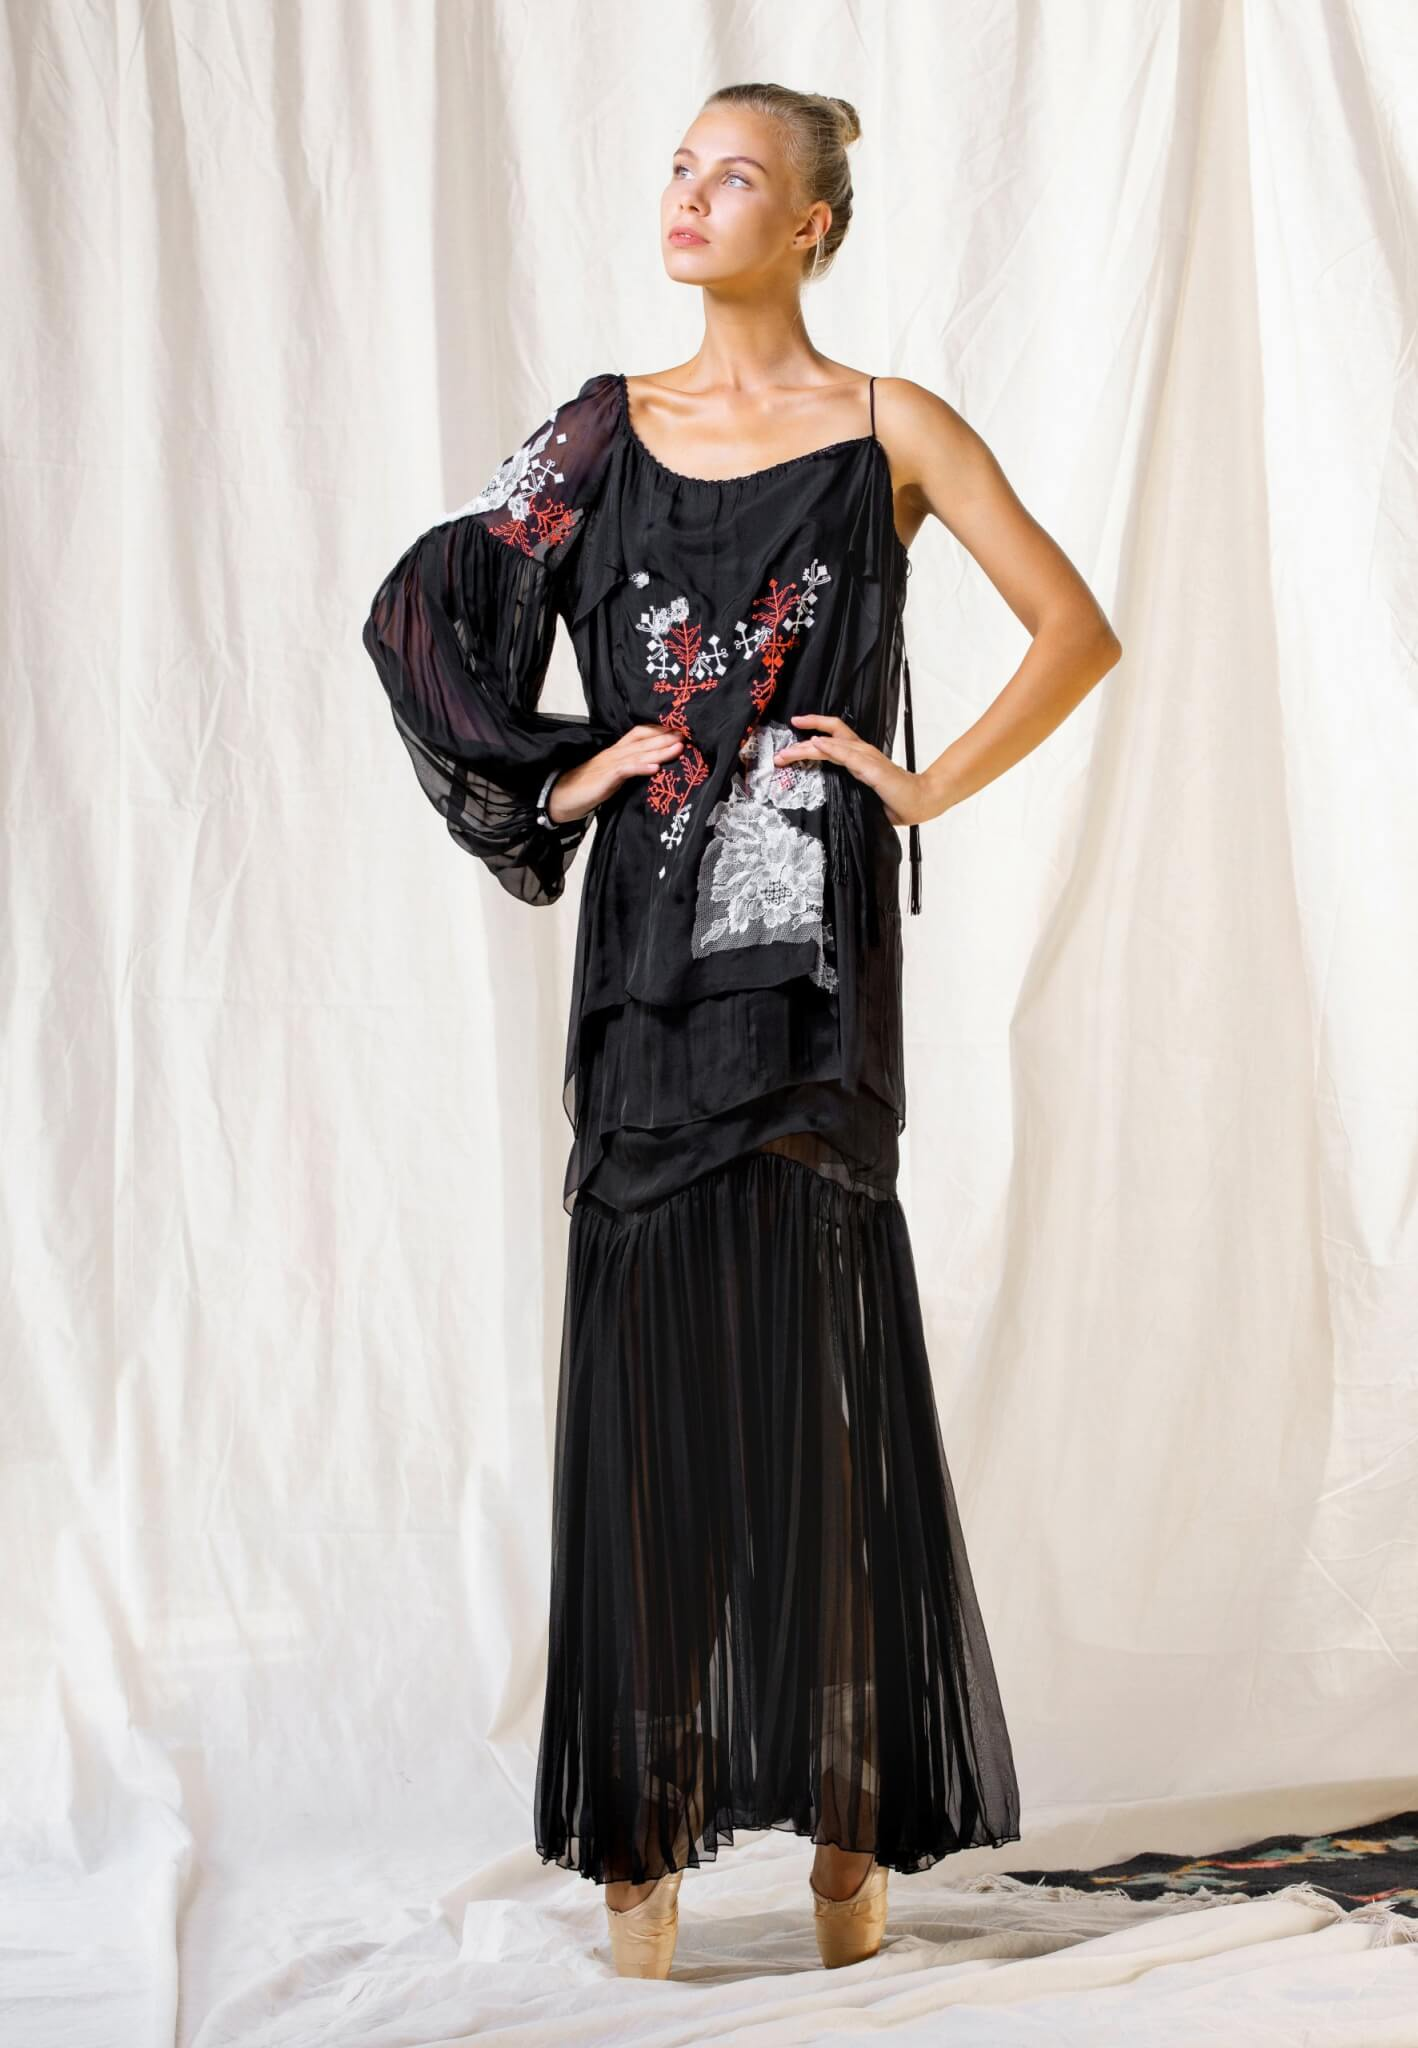 Black silk dress with embroidery